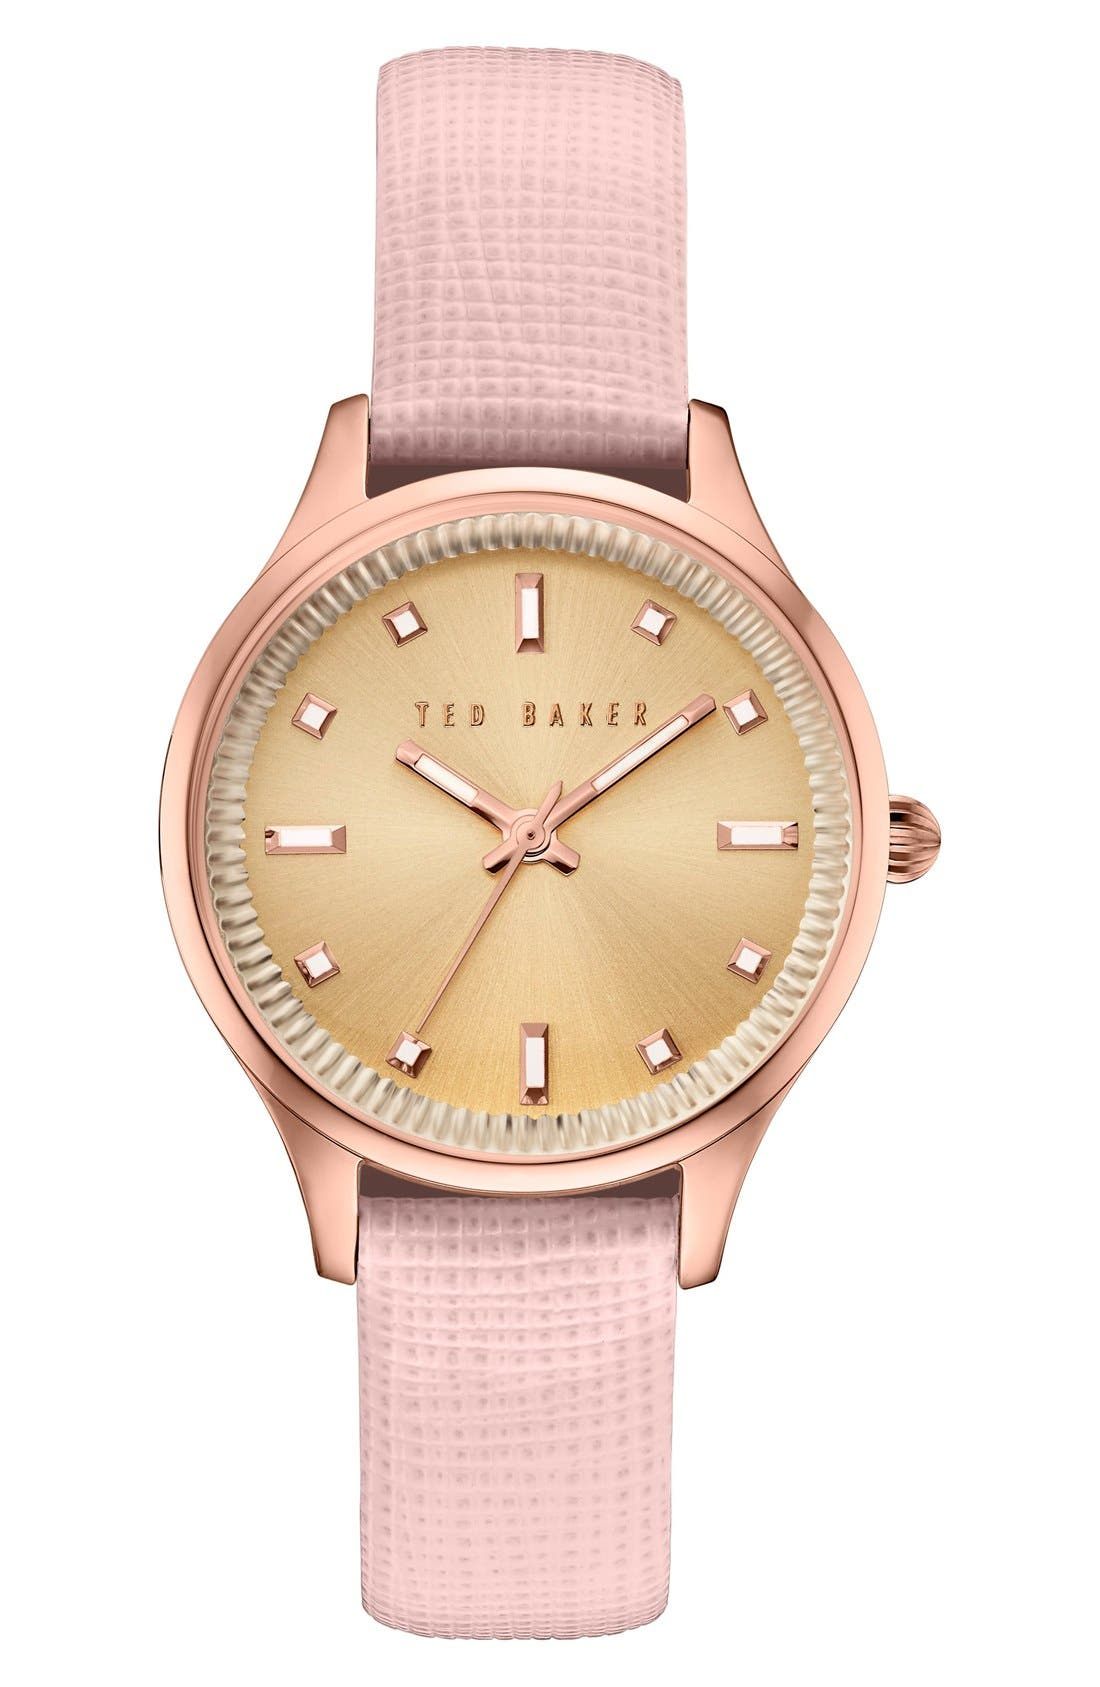 TED BAKER LONDON Dress Sport Multifunction Leather Strap Watch, 32mm